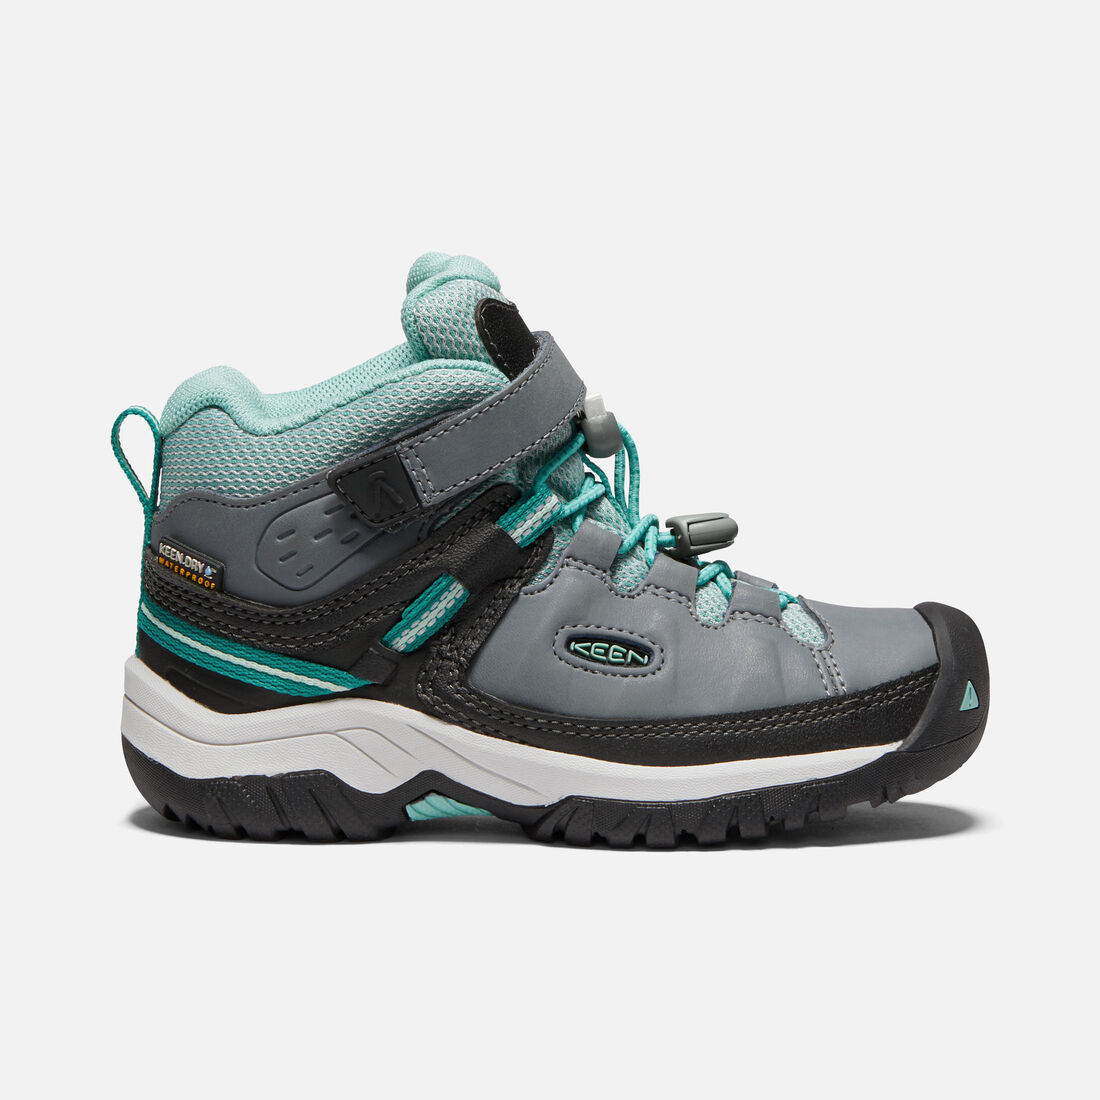 d9420c3d0d5 Keen Little Kid's Hiking Targhee, Shoes,